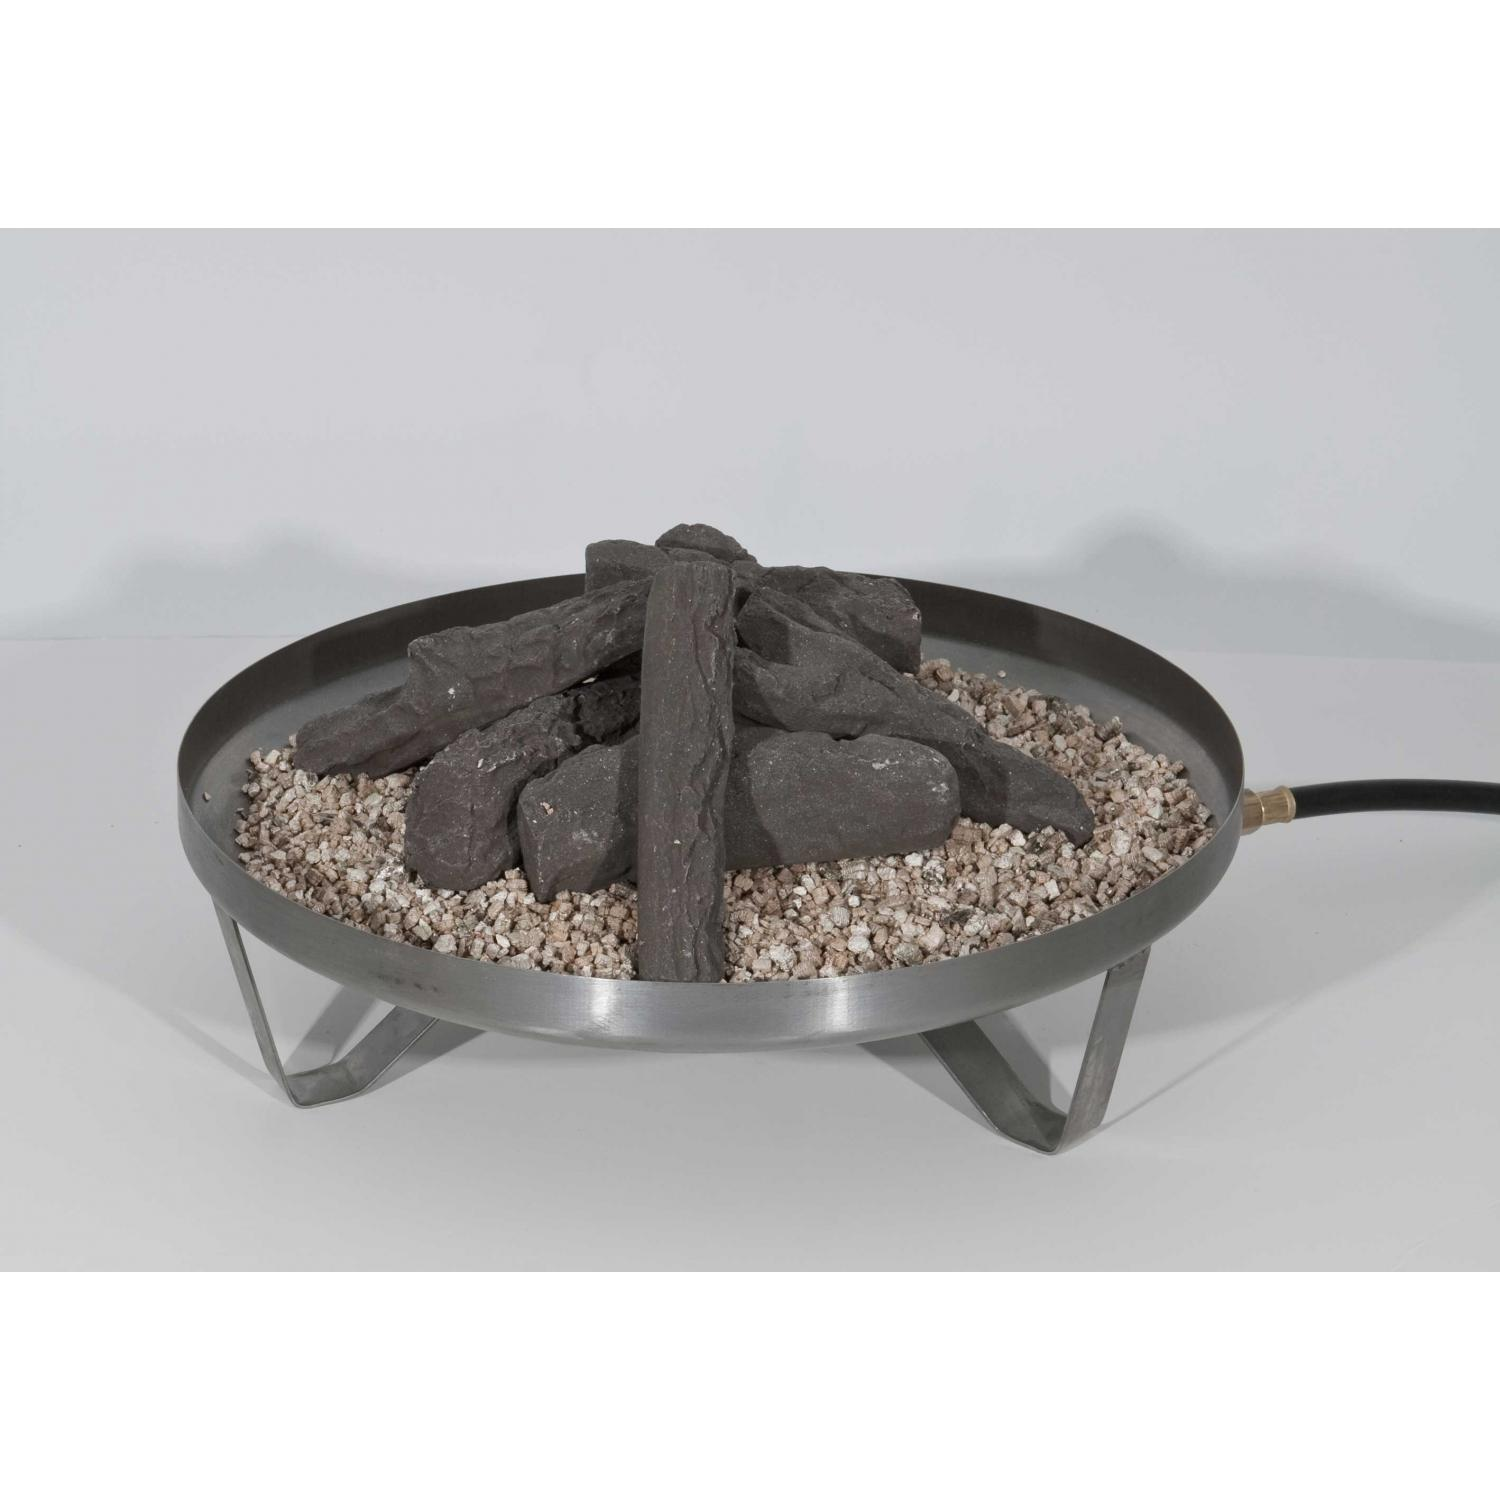 Fire Sense New Frontier Campfire Propane Fire Pit With Stainless Top And Ceramic Log Set